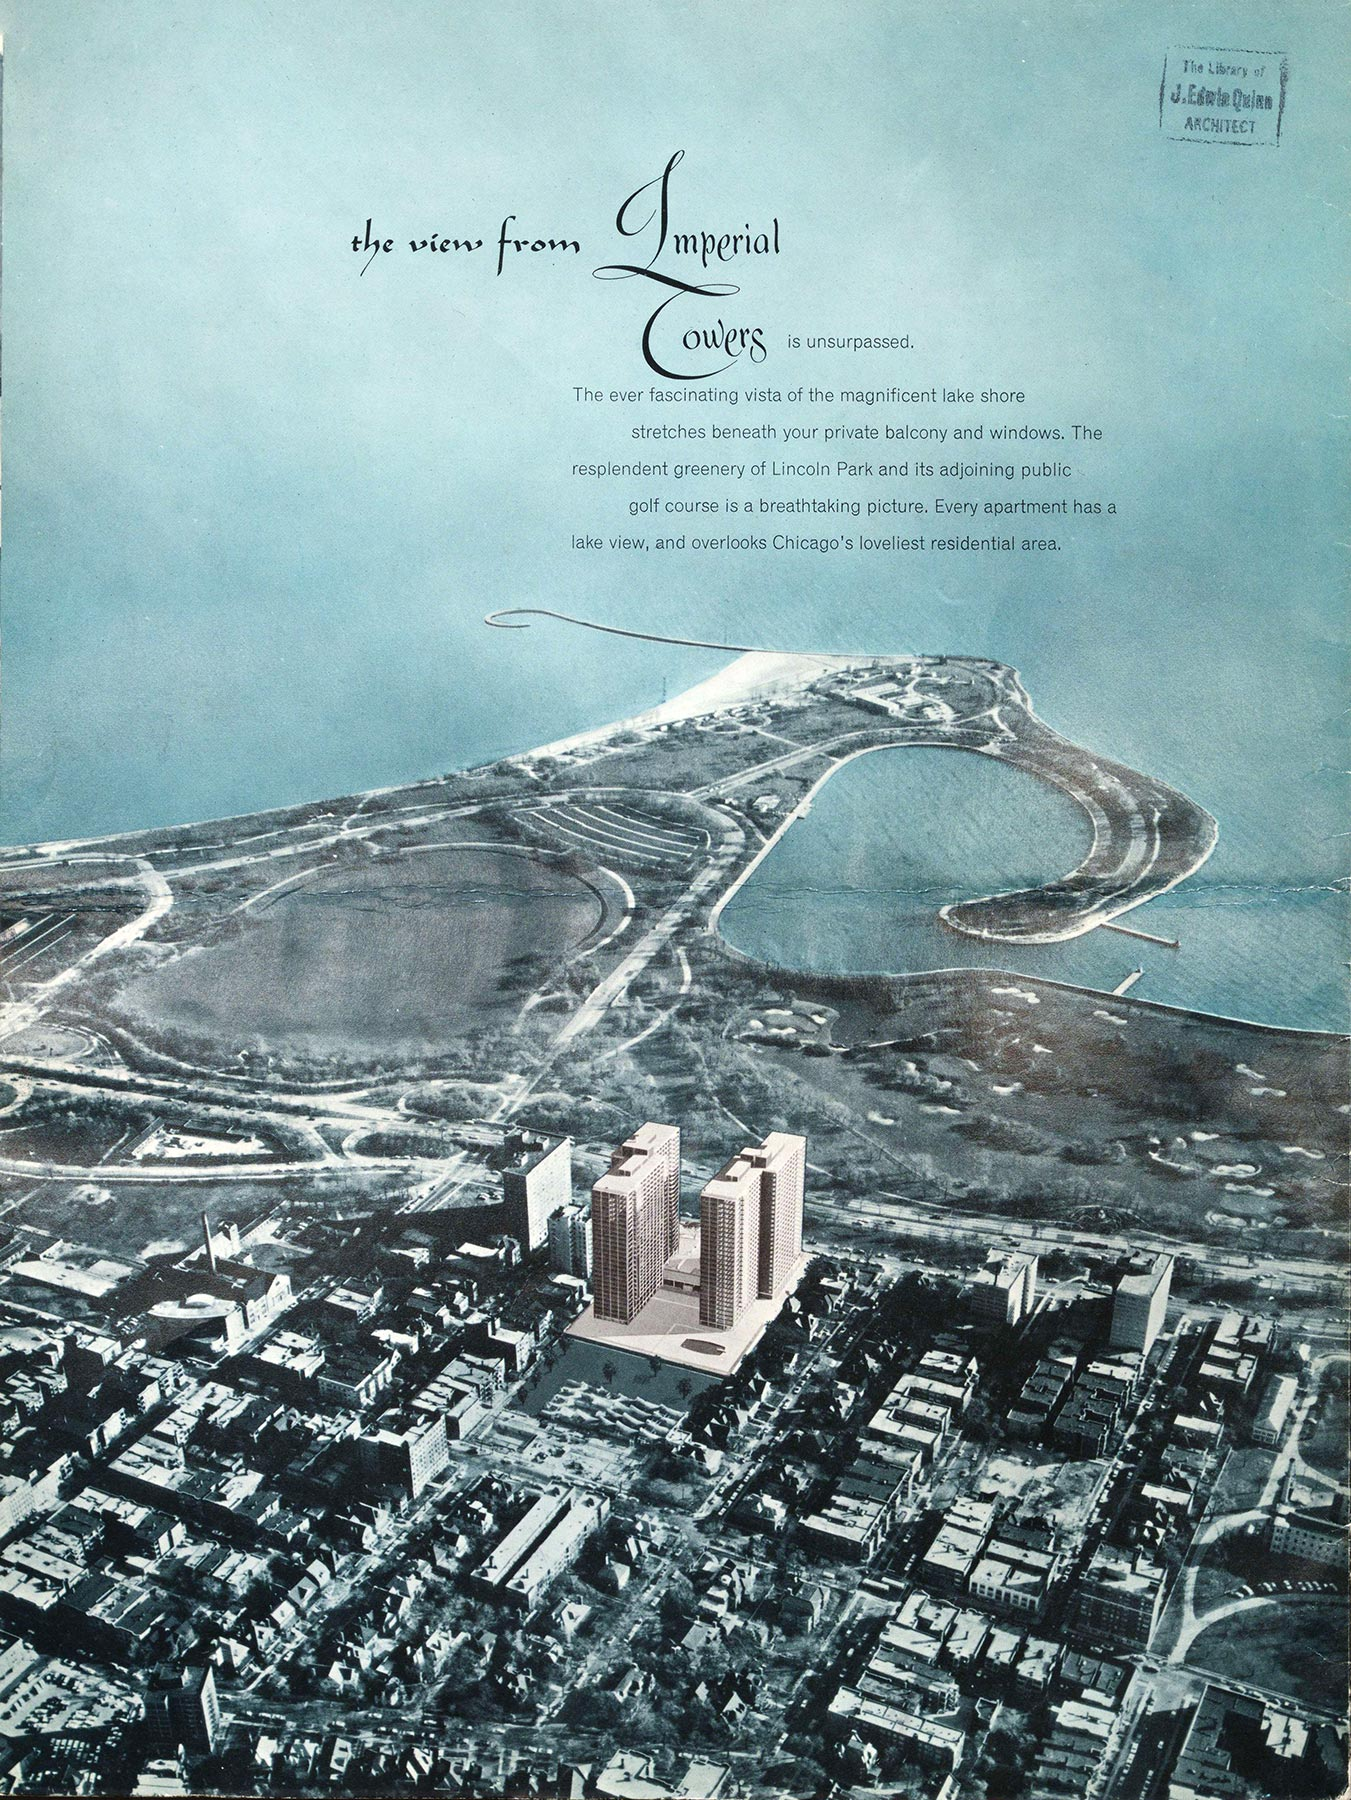 Imperial Towers: A World Apart,  marketing pamphlet produced by Powell, Schoenbrod and Hall. McNally and Quinn Records, Art Institute of Chicago, Ryerson & Burnham Archives, Series 1, OP 1.17, ca. 1961.